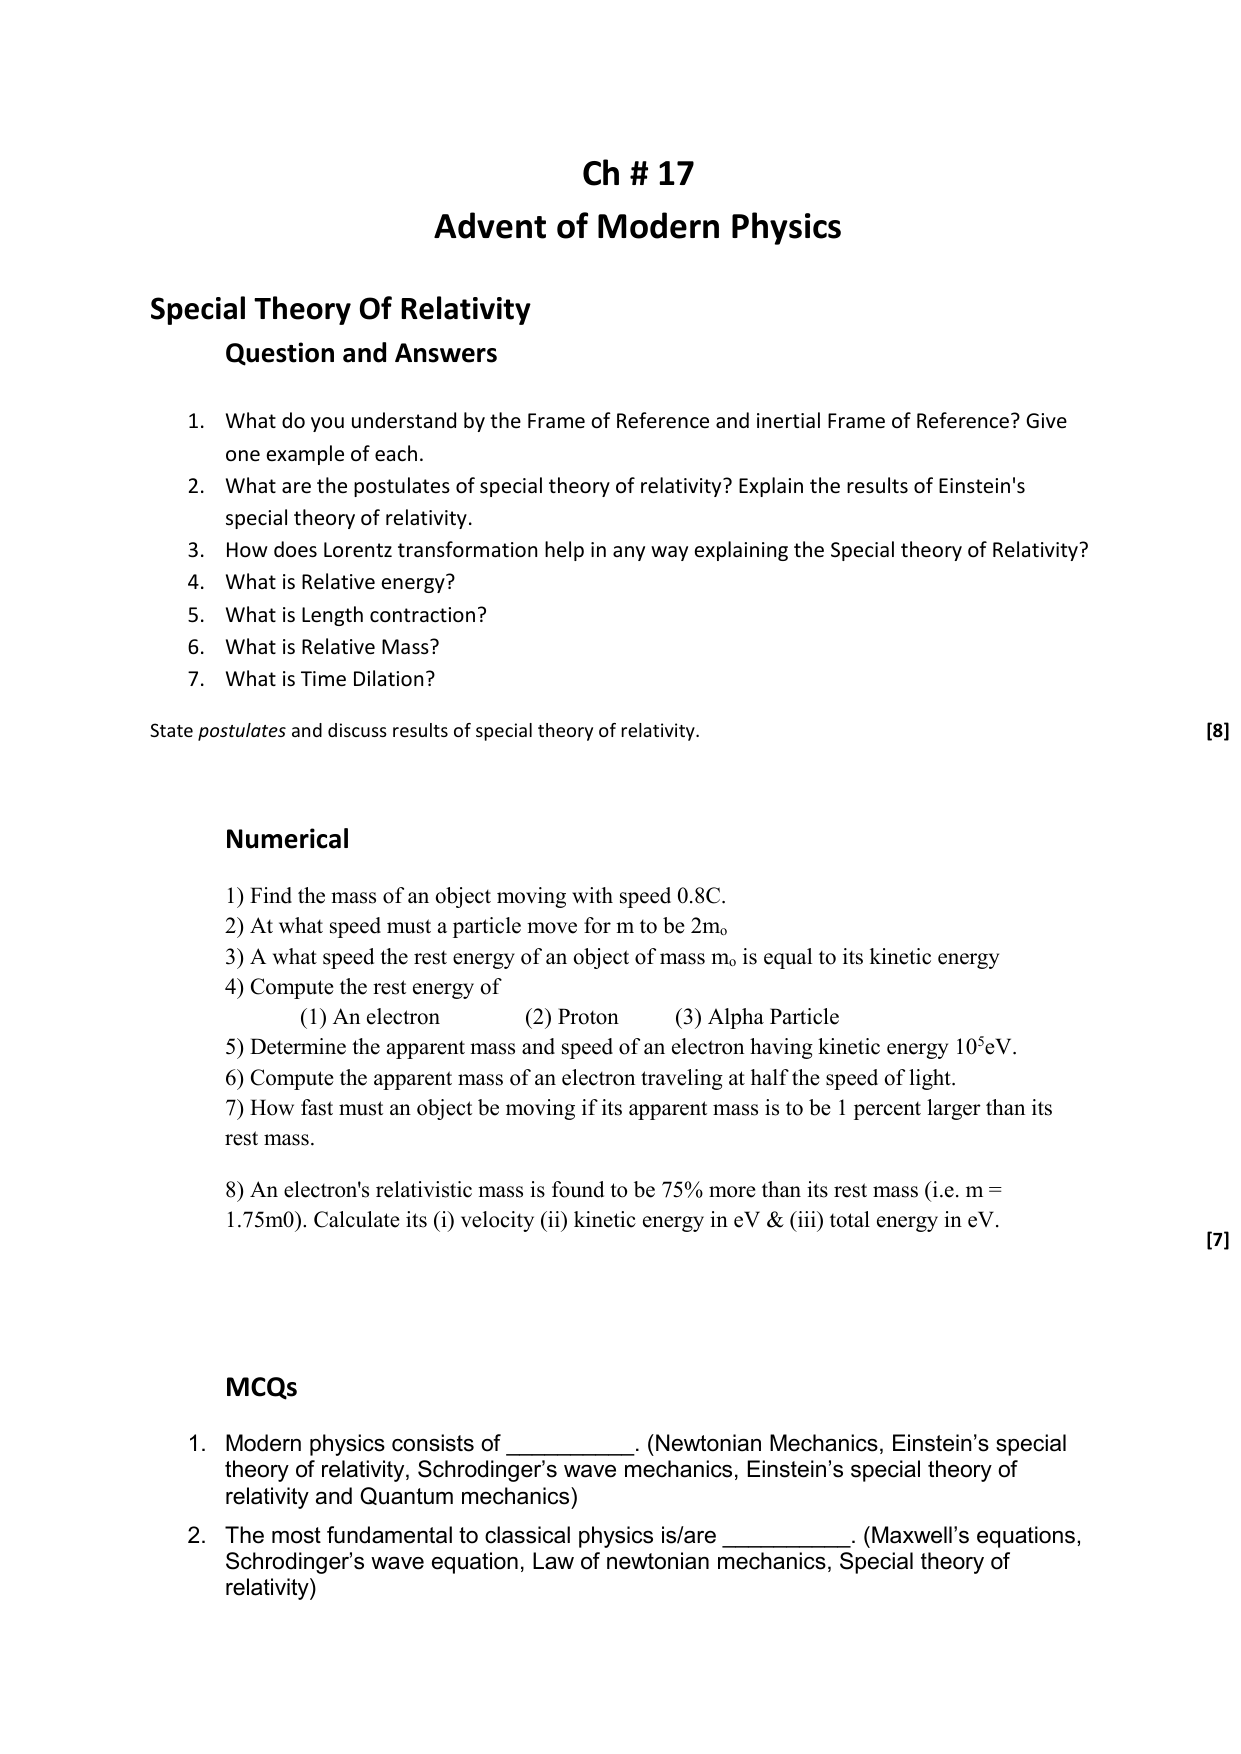 Ch # 17 Advent of Modern Physics Special Theory Of Relativity